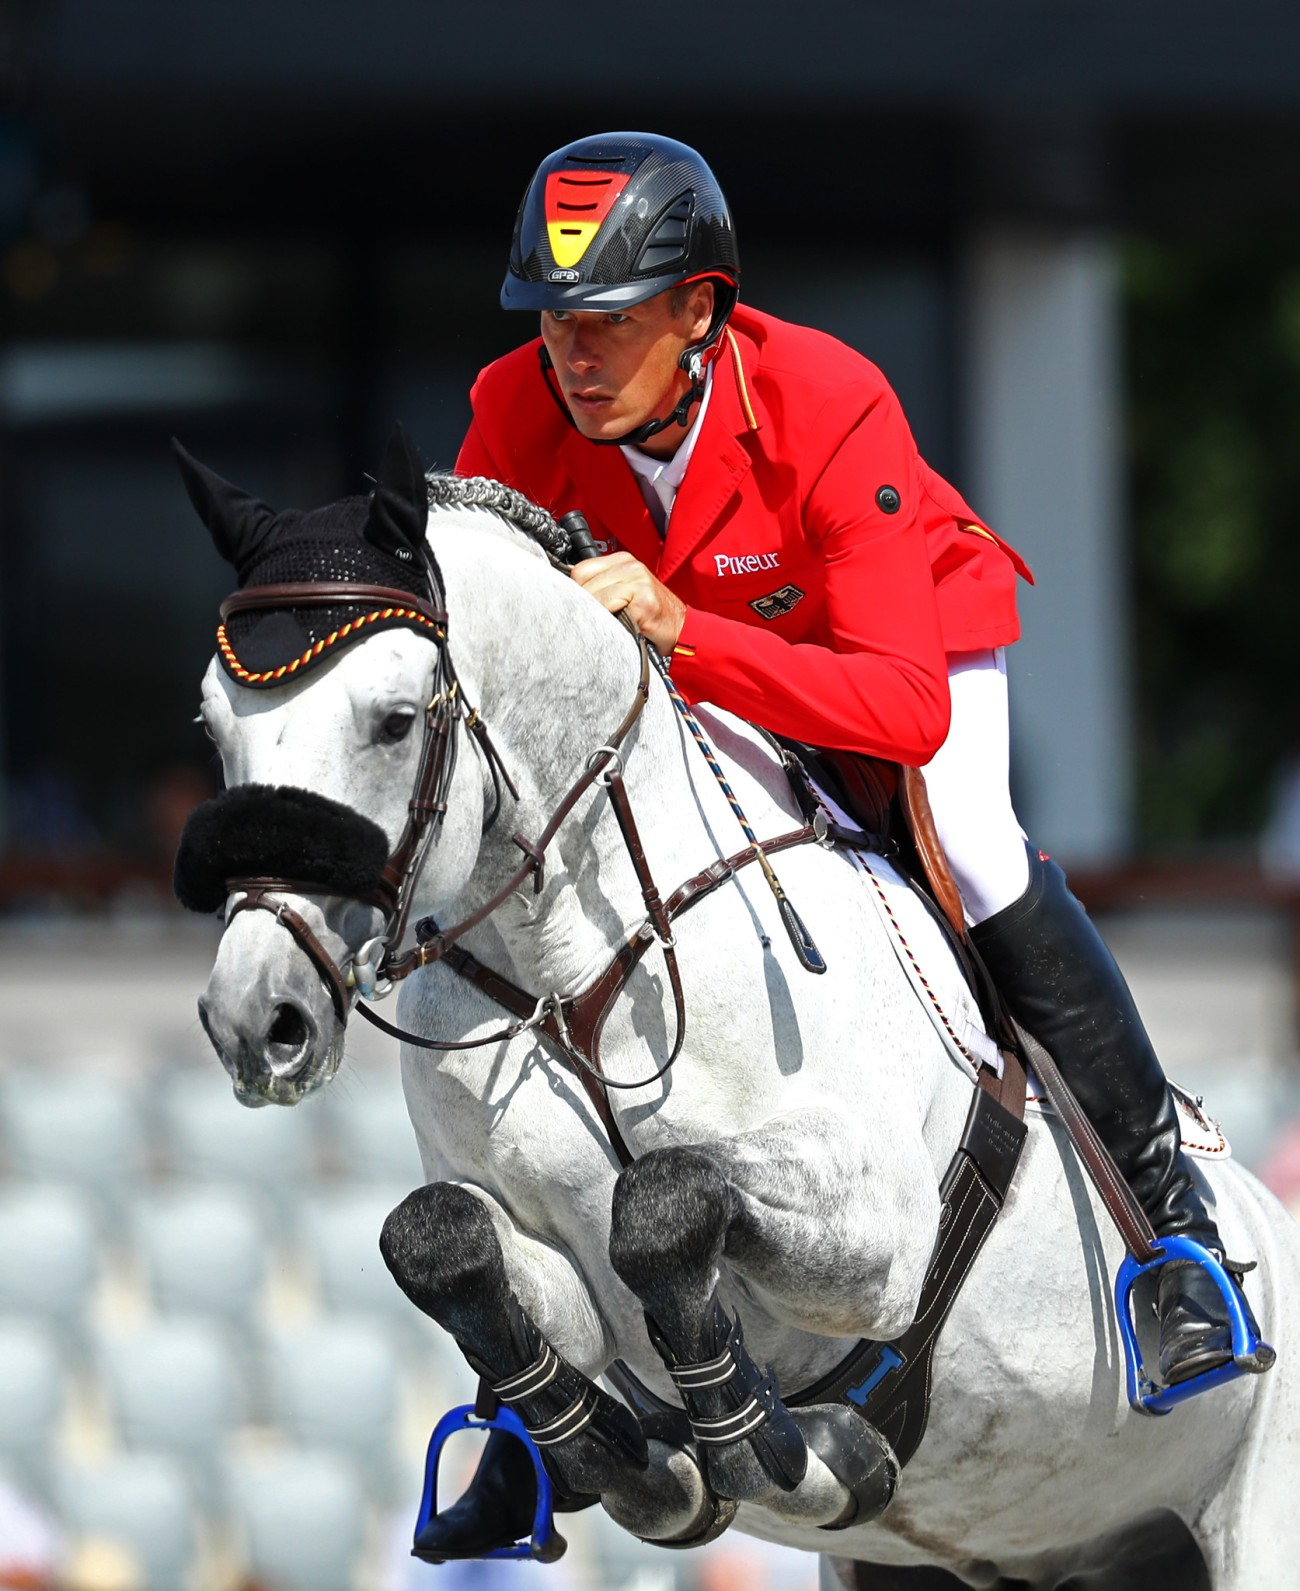 FEI European Championships In Rotterdam - Day Three